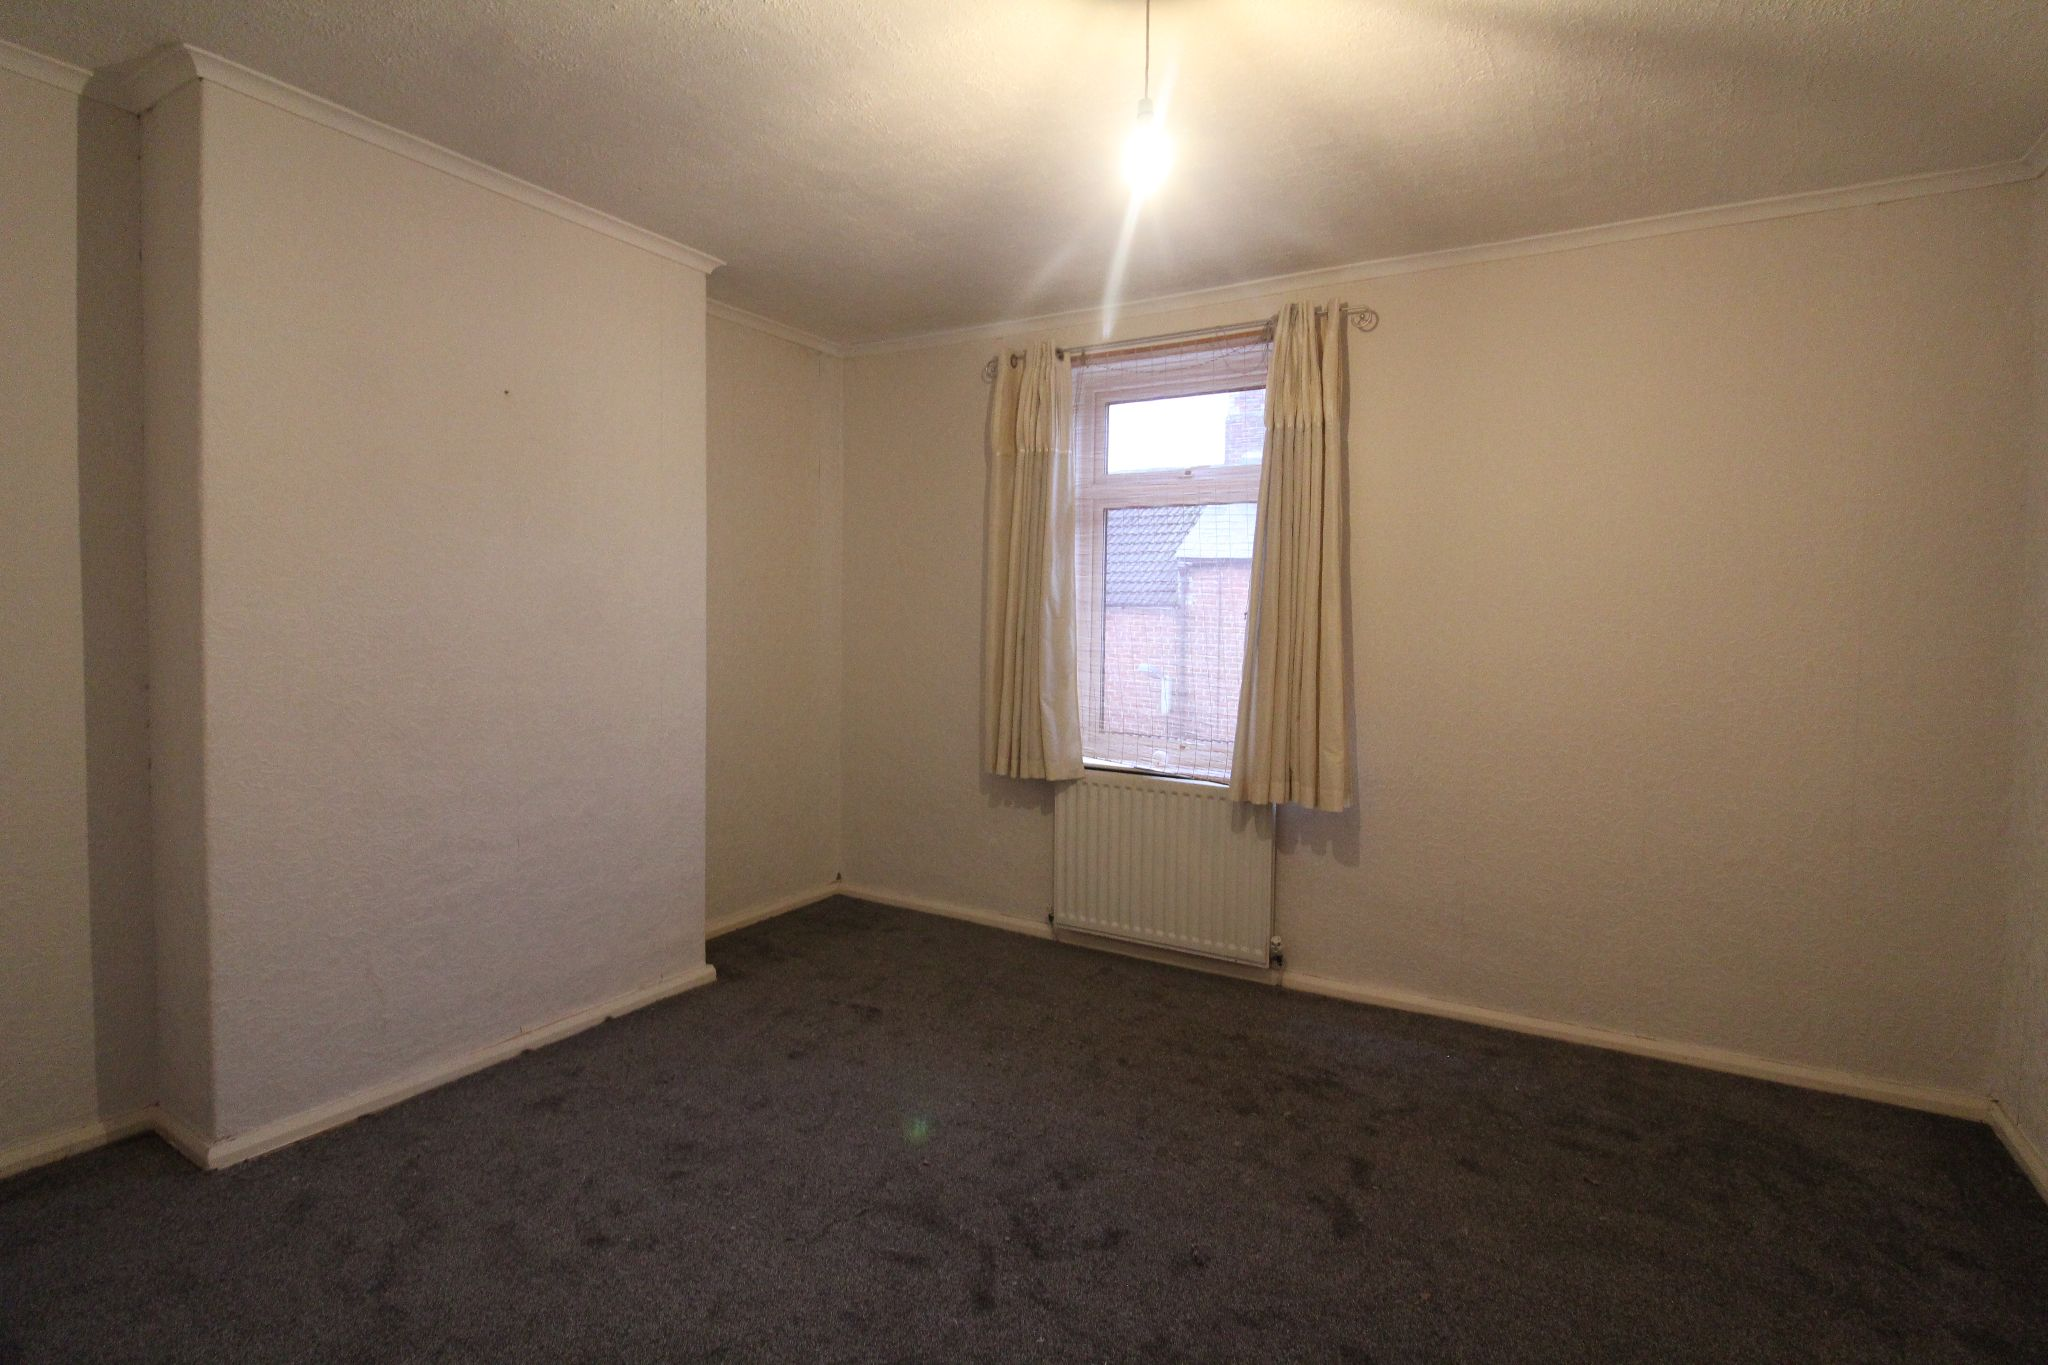 2 bedroom mid terraced house Let in Bishop Auckland - Photograph 25.